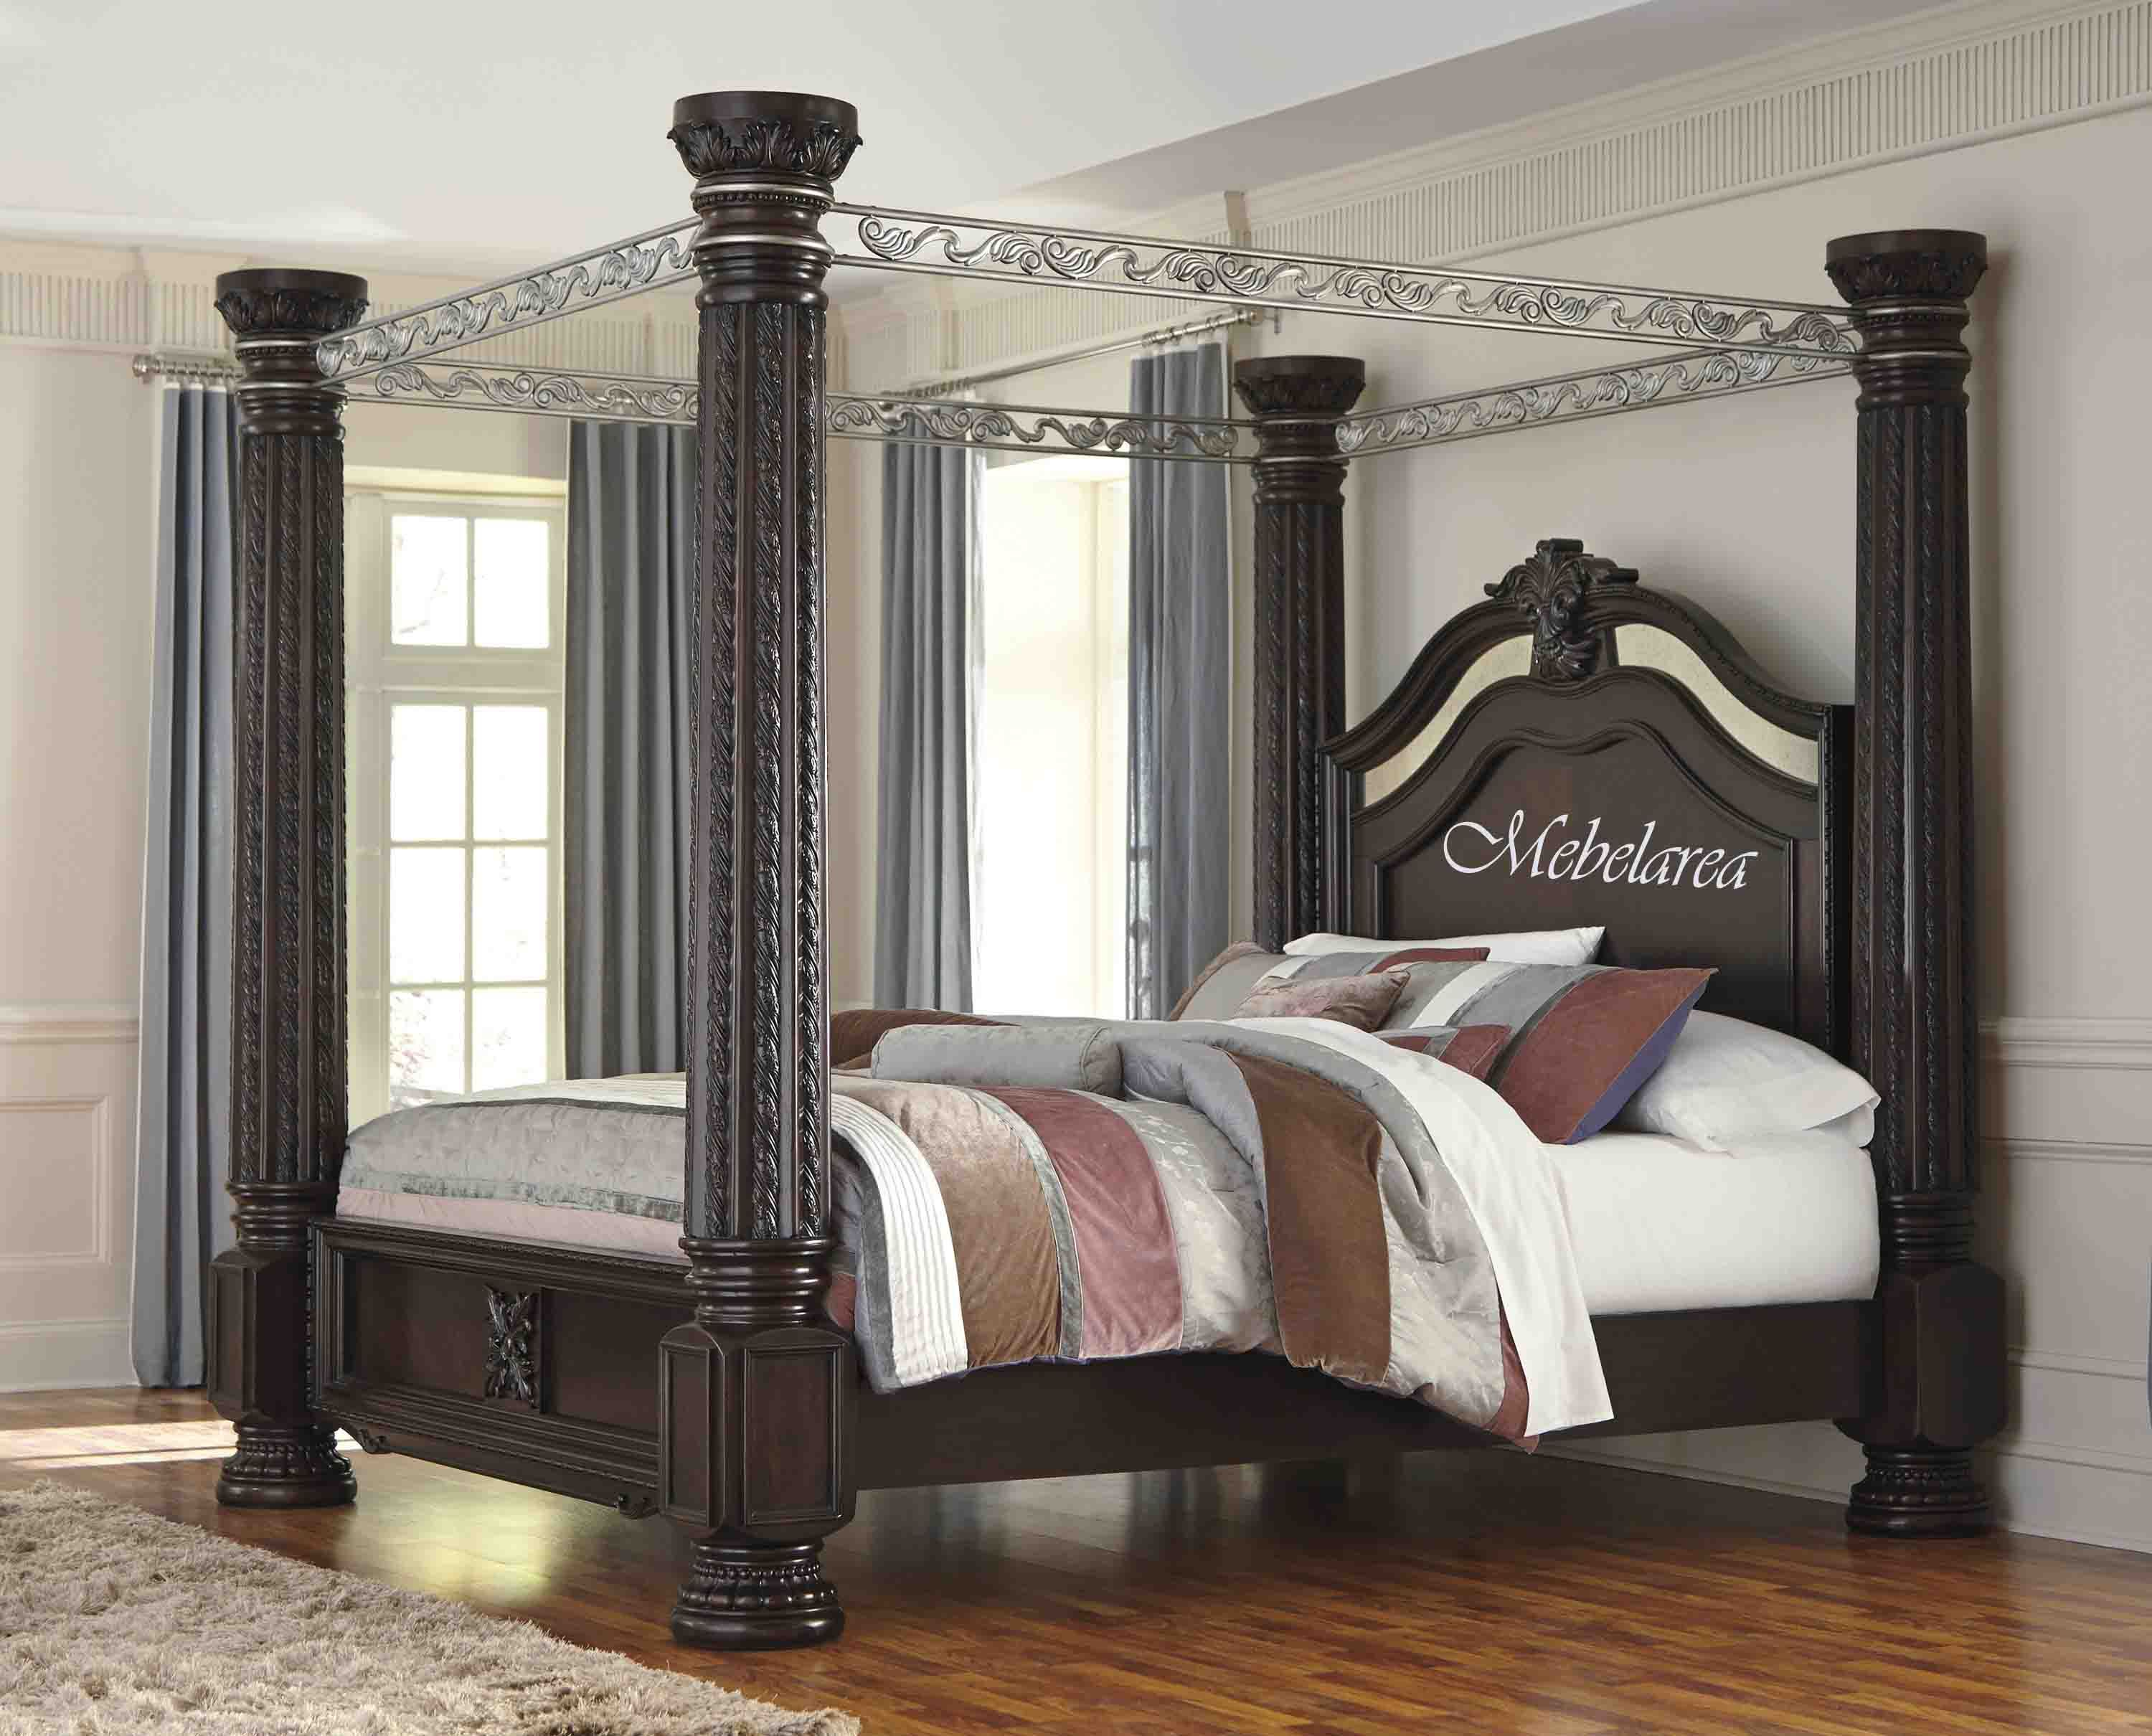 Bedroom Furniture Canopy Beds - Now, you might not really know the best way  to make the best bedroom setting that is modern,